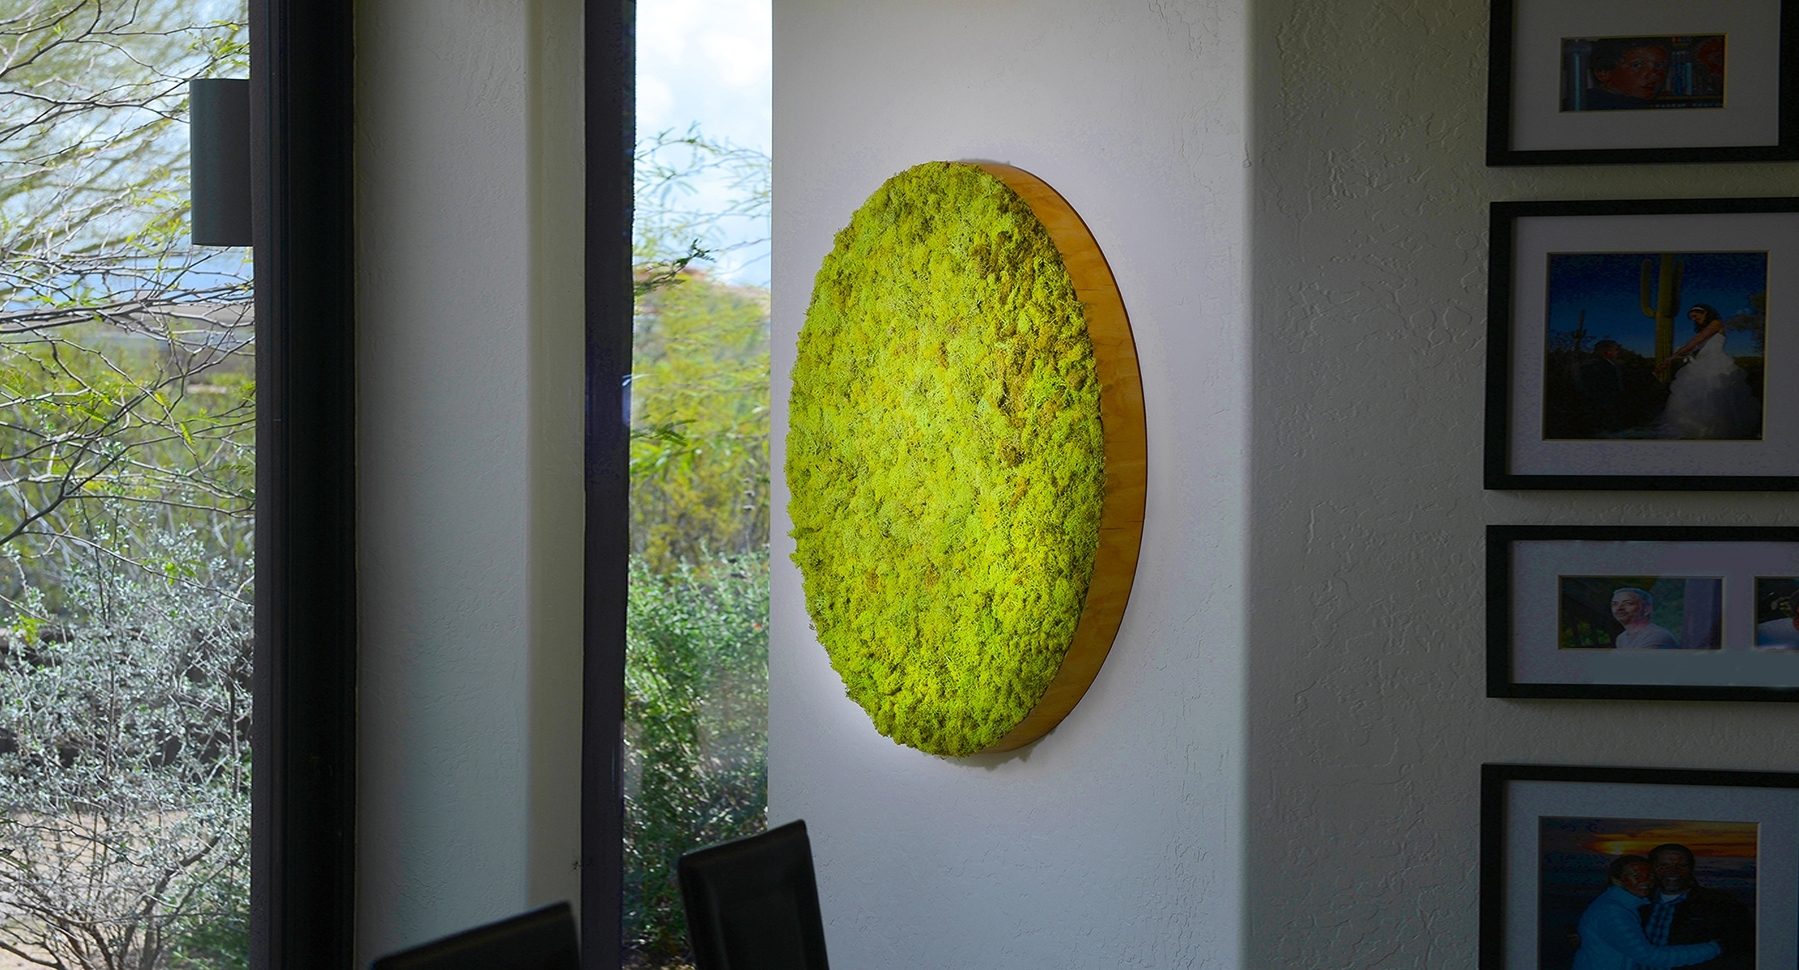 Mosswallart Pieces For Sale Online – Best Living Artwork For Home With Regard To Most Popular Moss Wall Art (View 16 of 20)